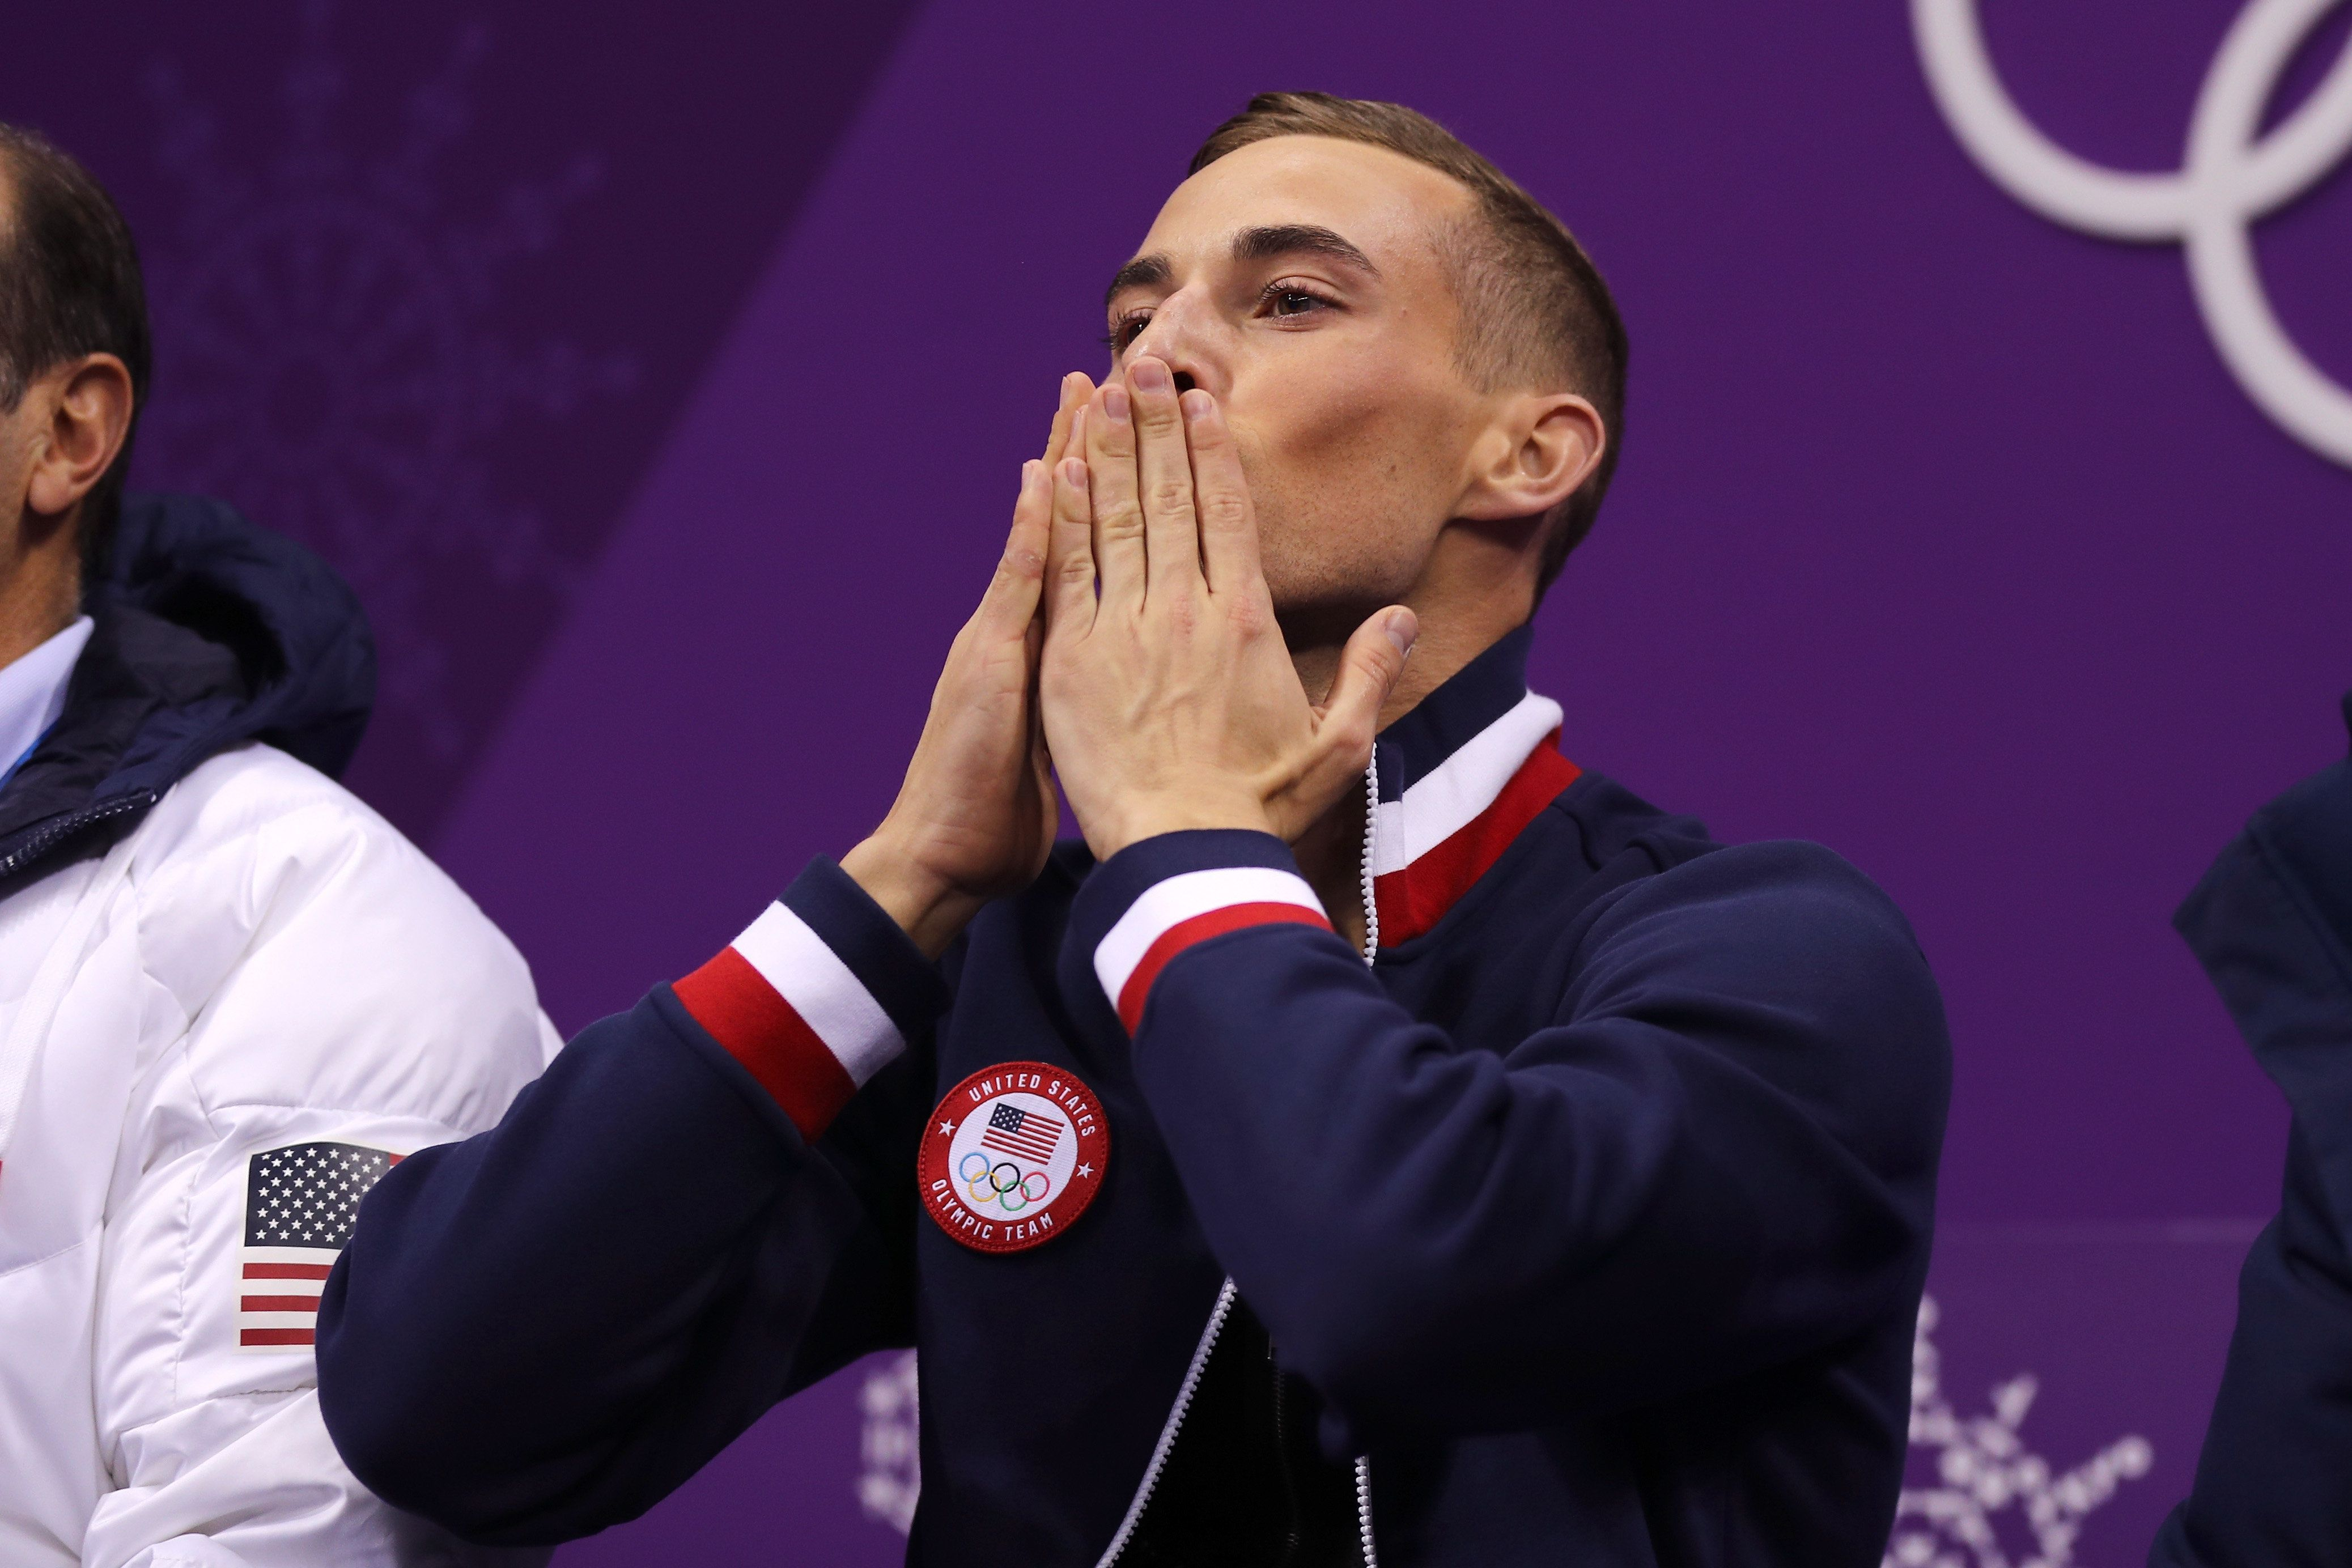 GANGNEUNG, SOUTH KOREA - FEBRUARY 16:  Adam Rippon of the United States reacts after competing during the Men's Single Skating Short Program at Gangneung Ice Arena on February 16, 2018 in Gangneung, South Korea.  (Photo by Maddie Meyer/Getty Images)